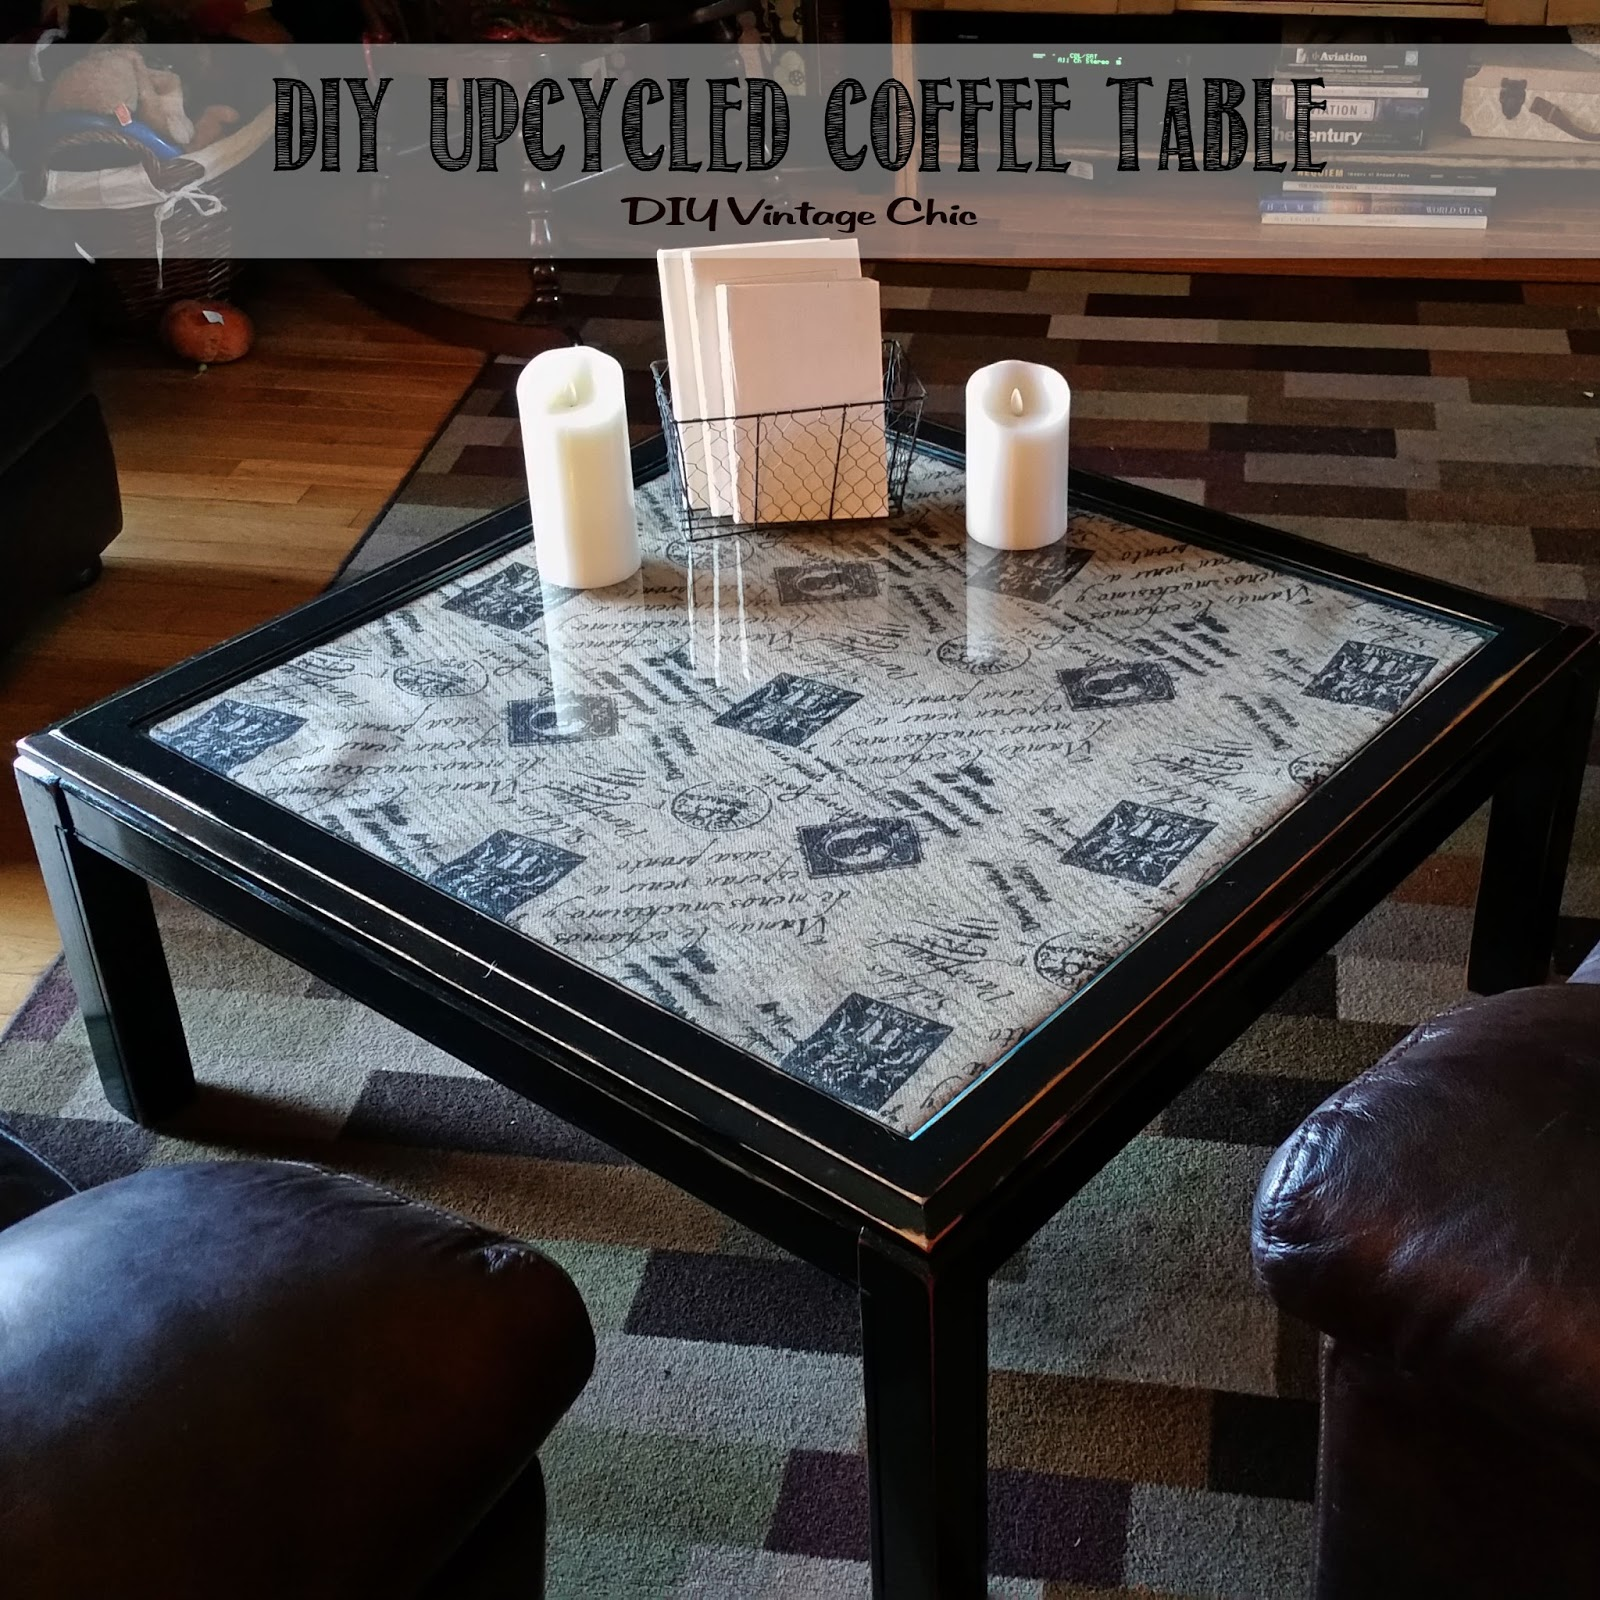 DIY Vintage Chic DIY Upcycled Coffee Table